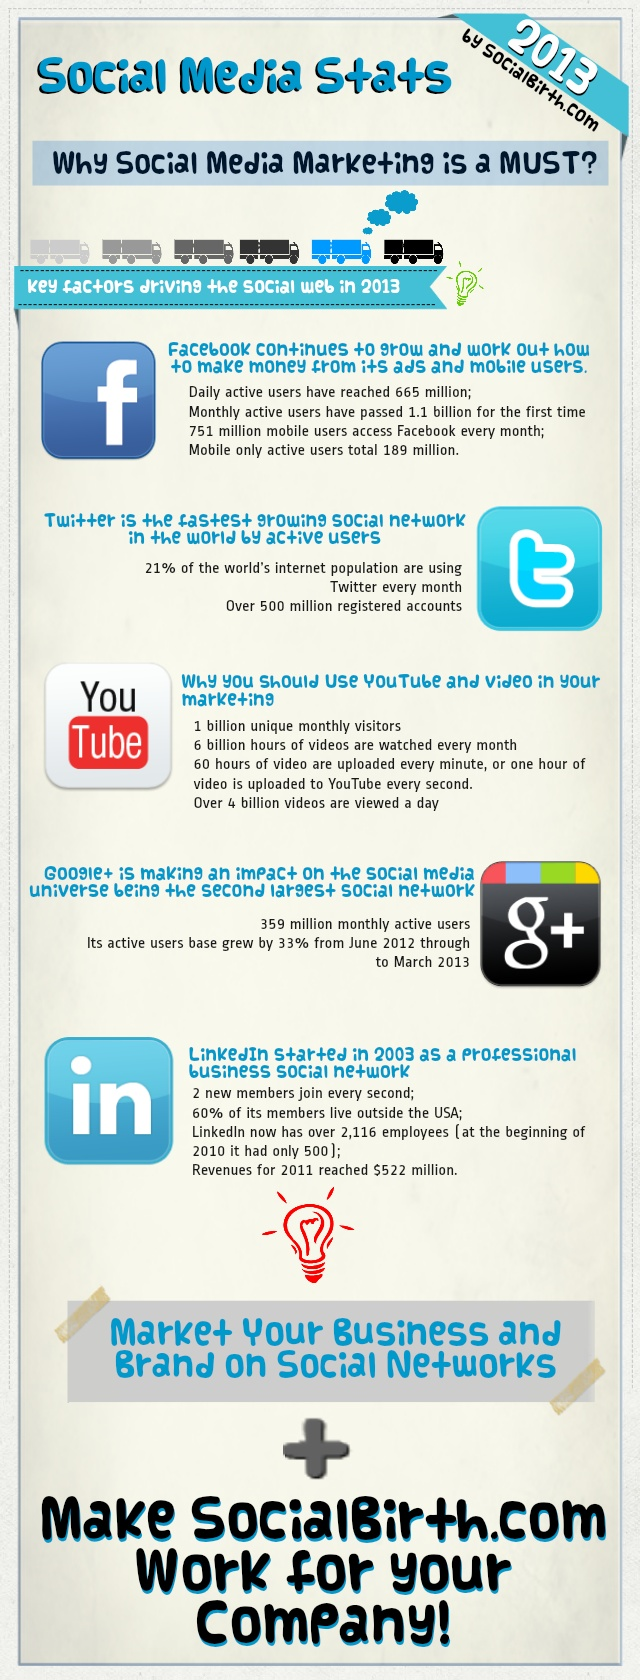 Why Social Media Marketing is a MUST? Market your business and brand on social networks and make socialbirth.com work for you!